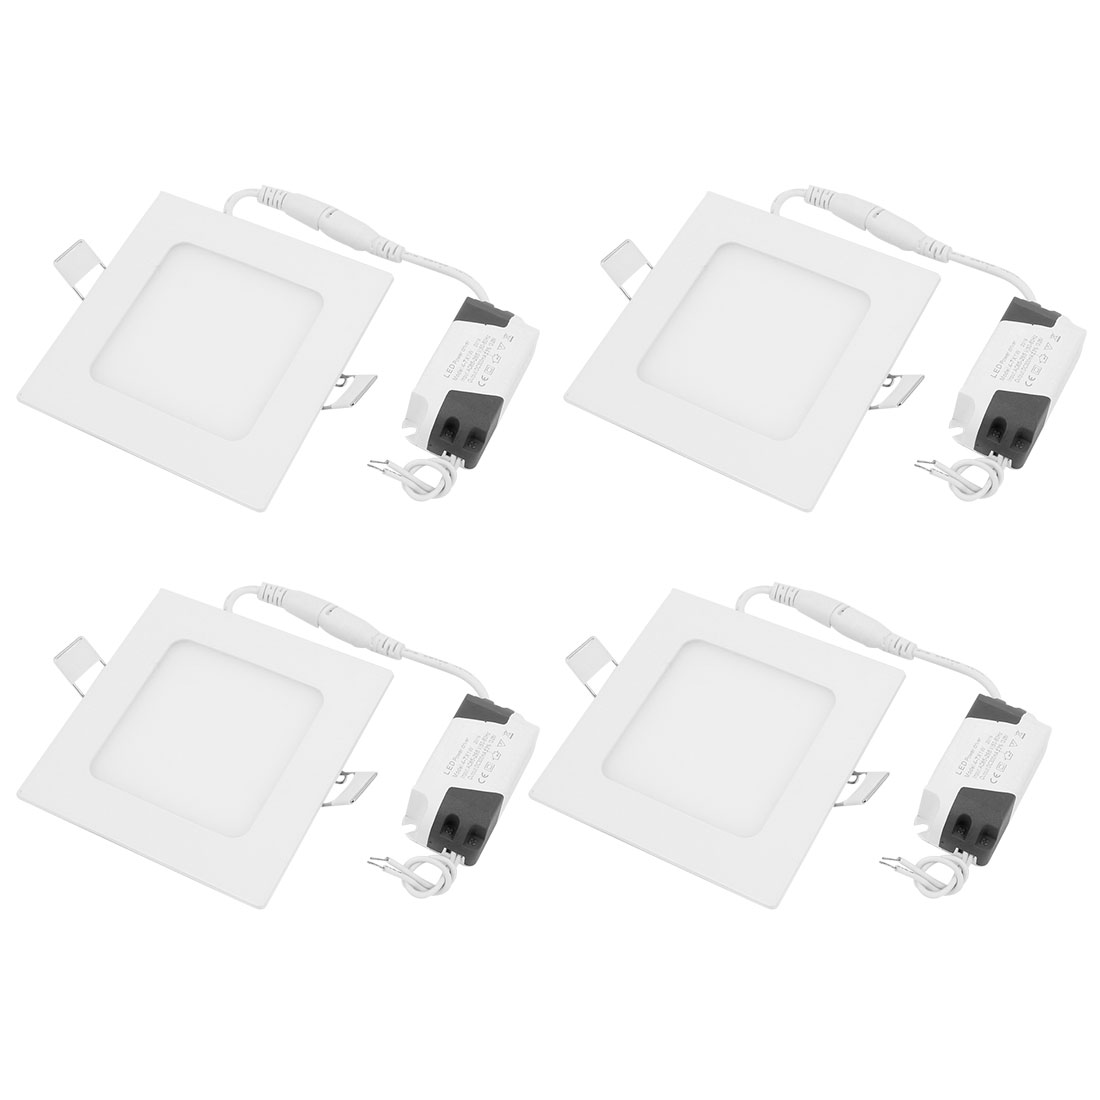 4Pcs AC85V-265V 4W Ultra Slim Square LED Recessed Ceiling Panel Light Lamp White